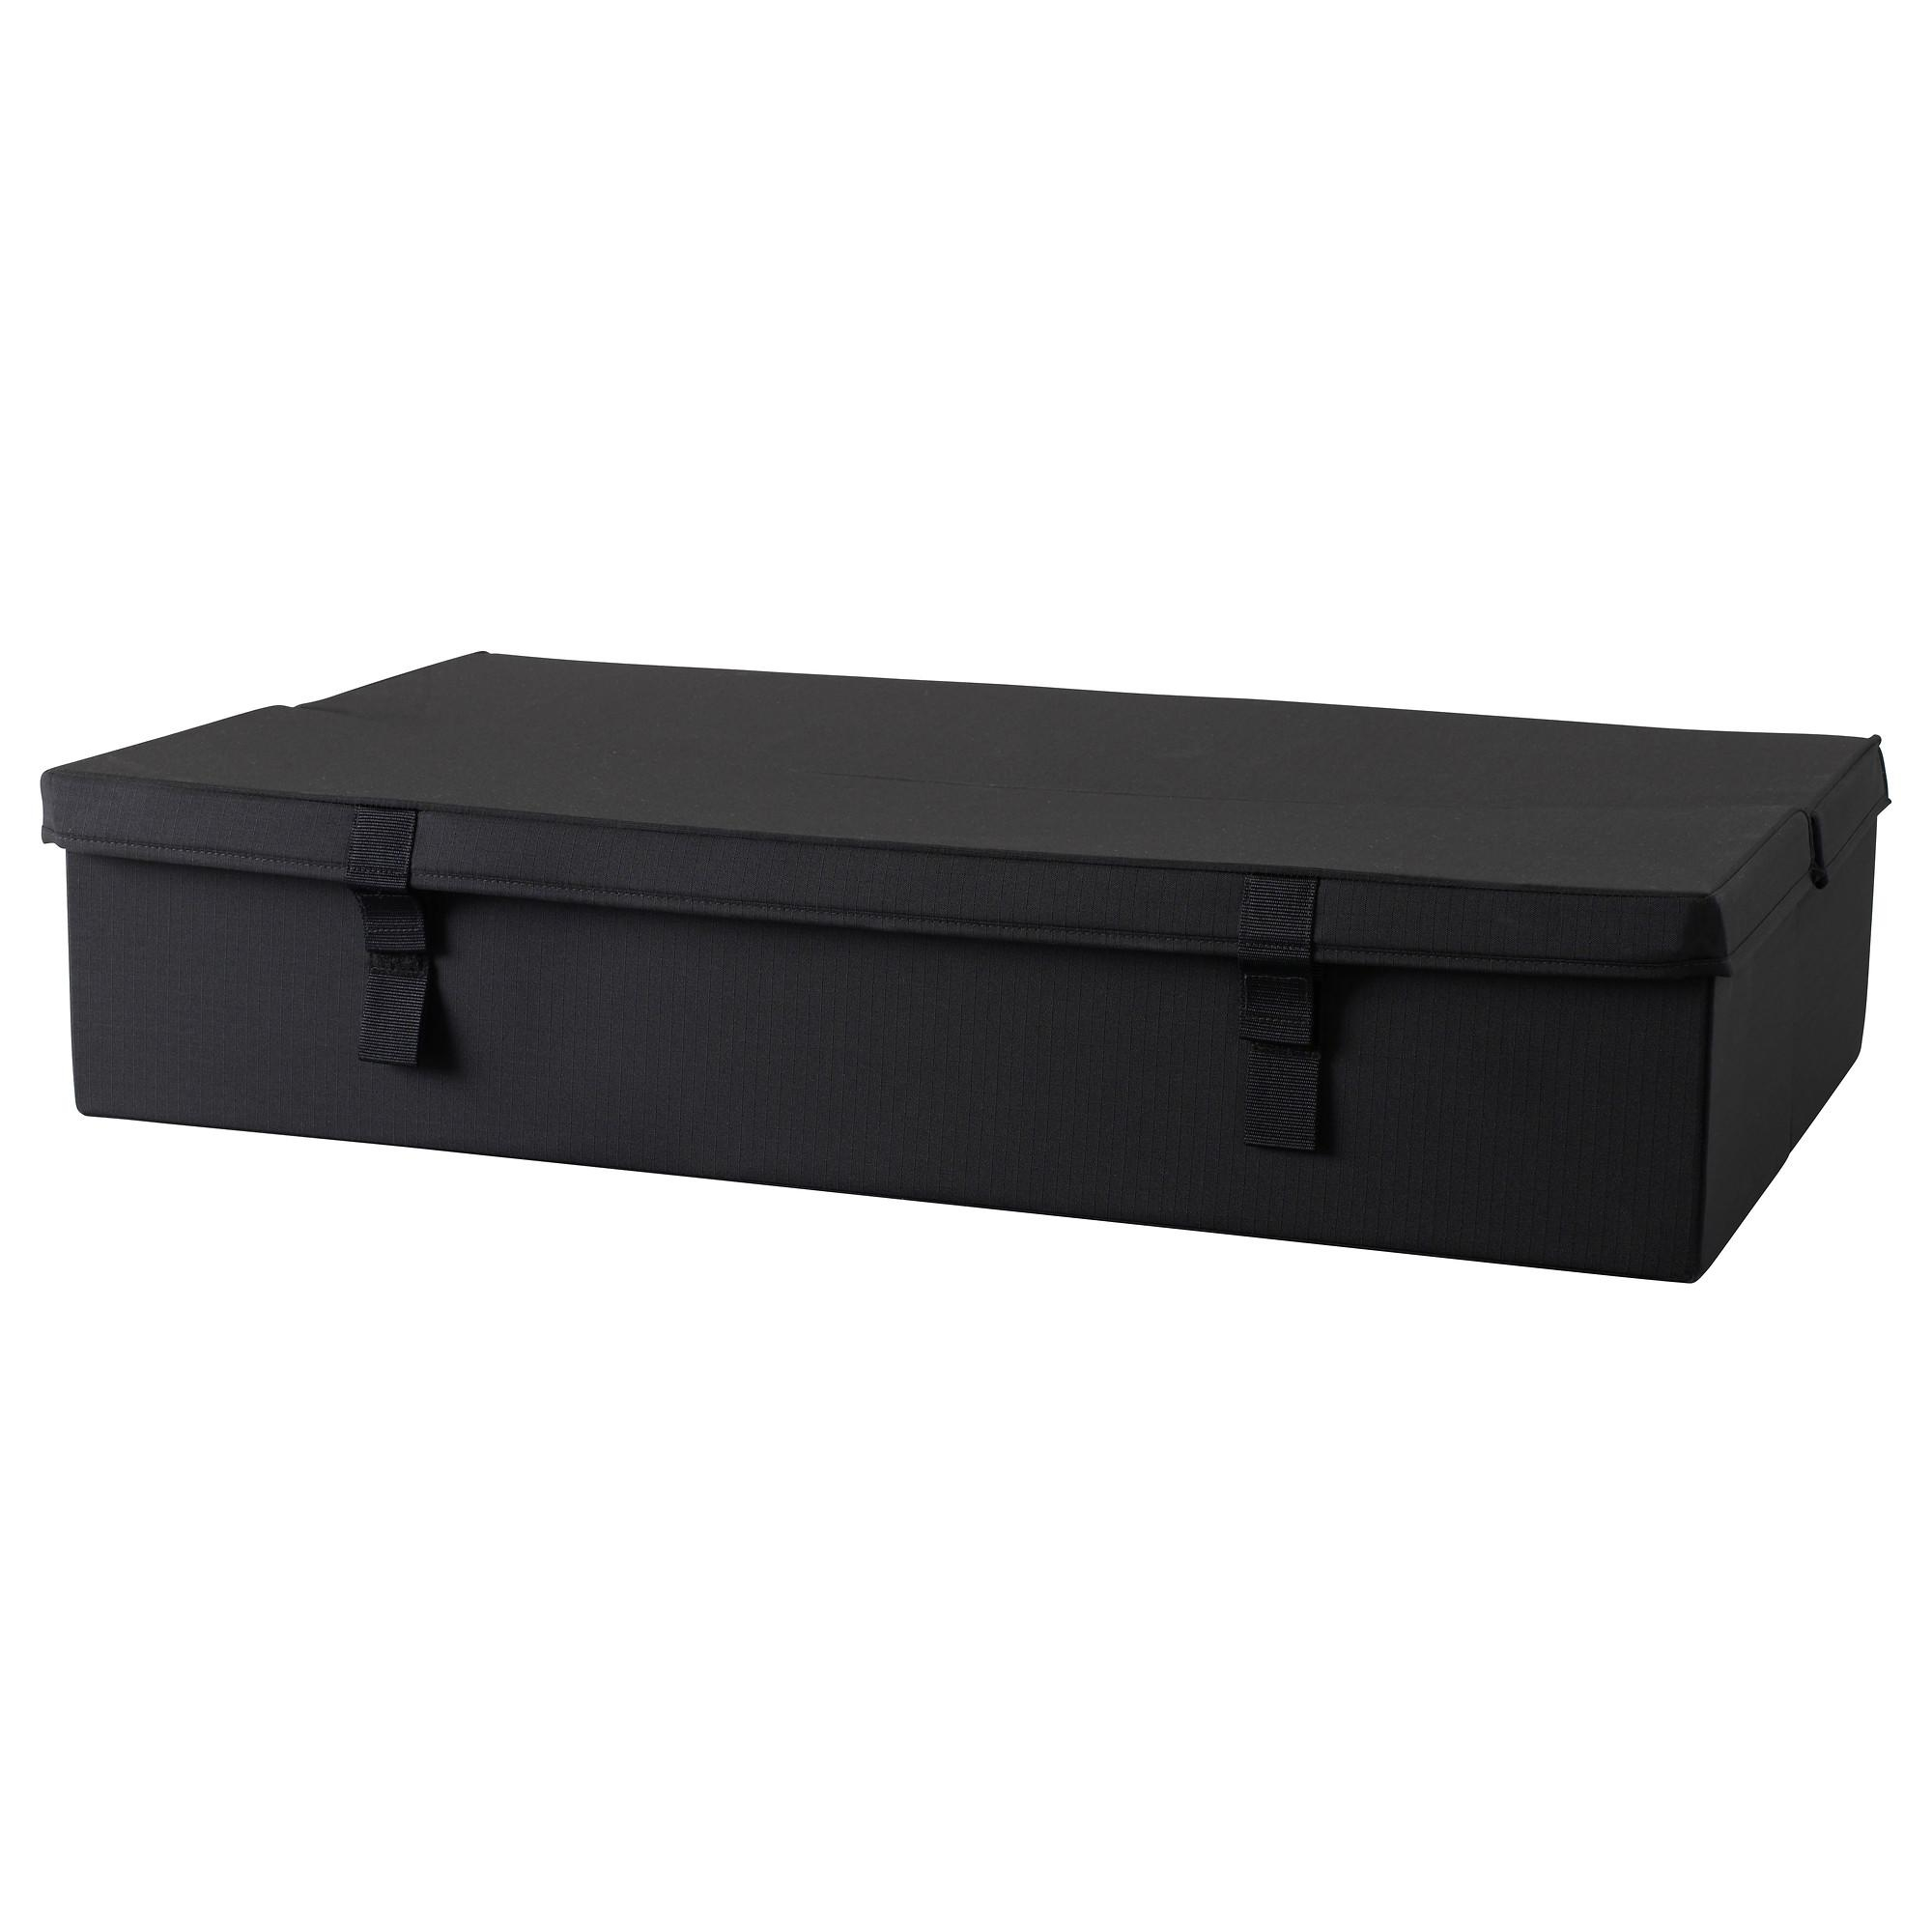 Lycksele Storage Box 2 Seat Sofa Bed – Ikea Intended For Ikea Sofa Storage (View 11 of 20)